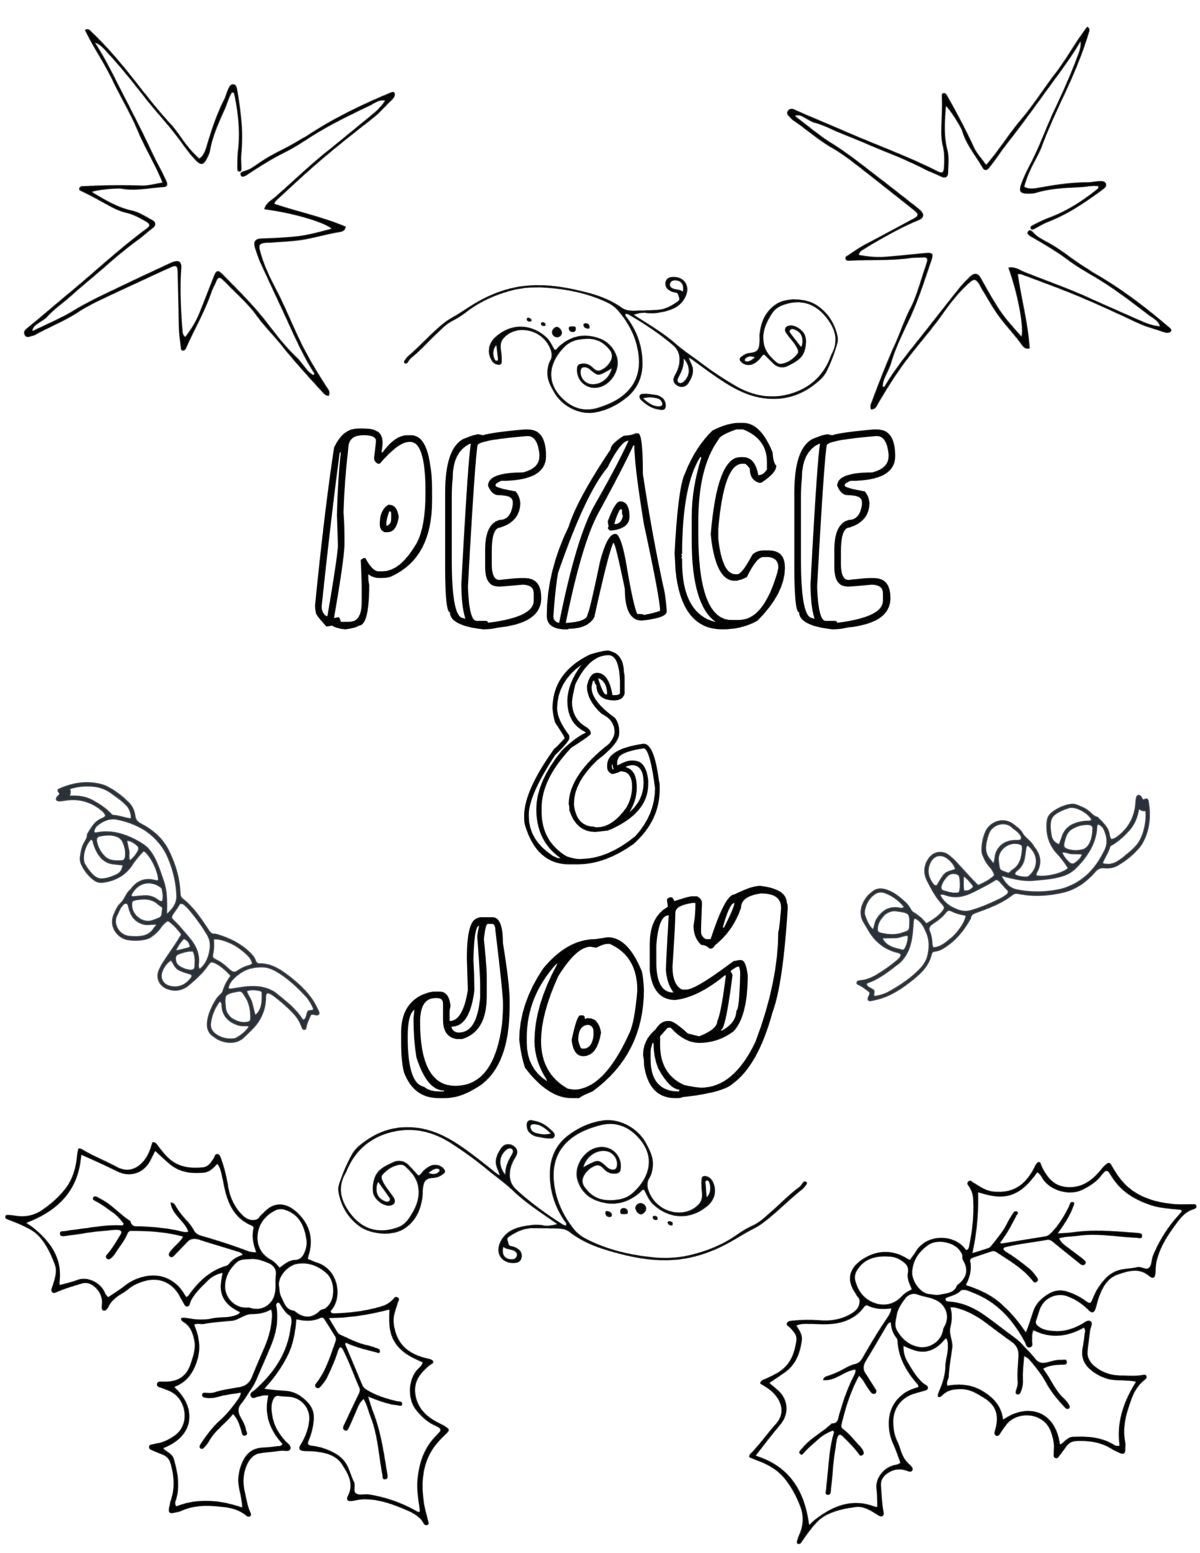 Free Christmas Coloring Pages to Print for Adults Free Printable Christmas Coloring Pages for Adults